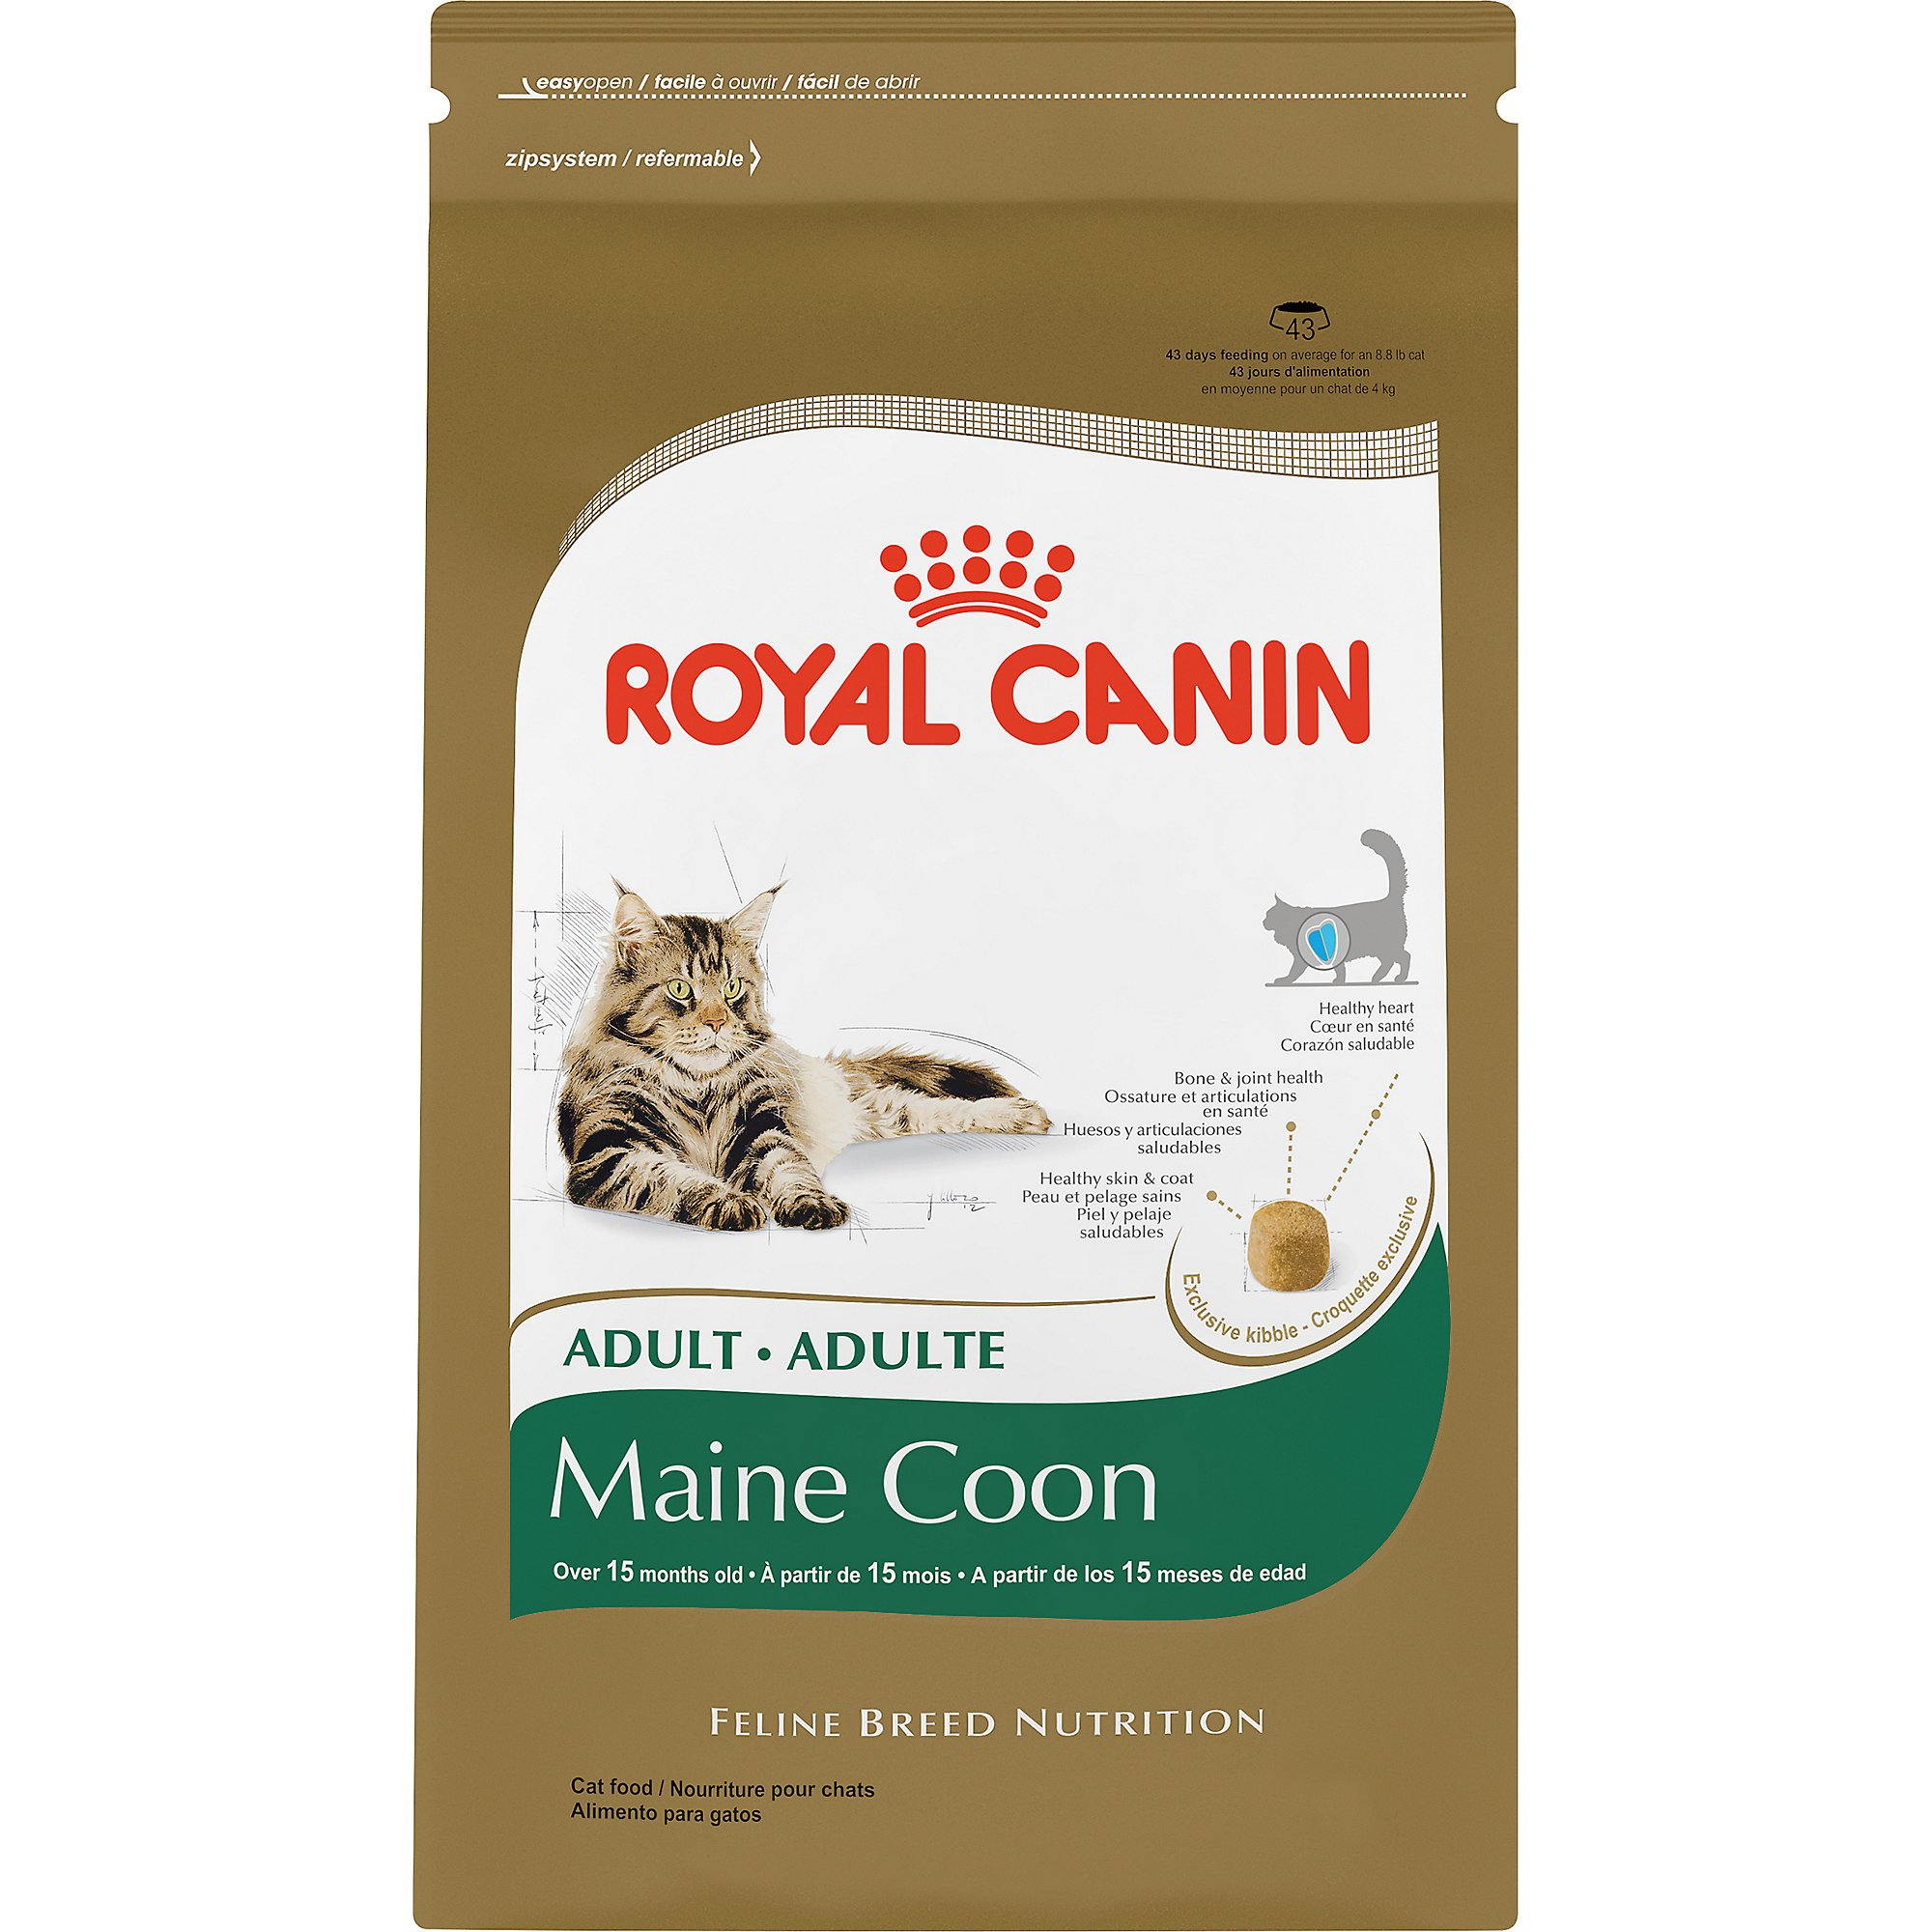 royal canin feline breed nutrition maine coon adult cat food petco. Black Bedroom Furniture Sets. Home Design Ideas